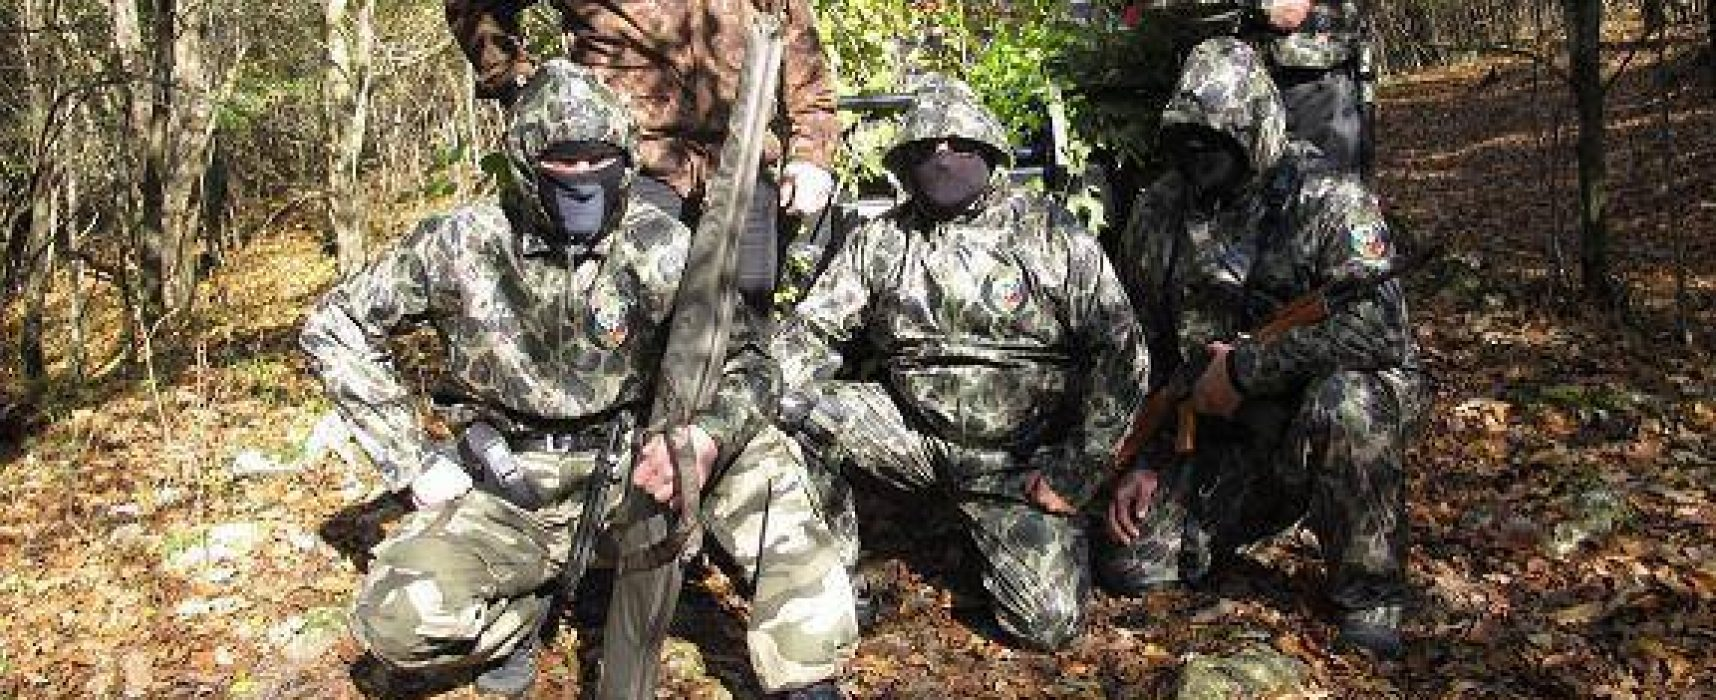 Russia-Trained Civil Militias Along Bulgaria's Borders Are 'Ready for War With Refugees'